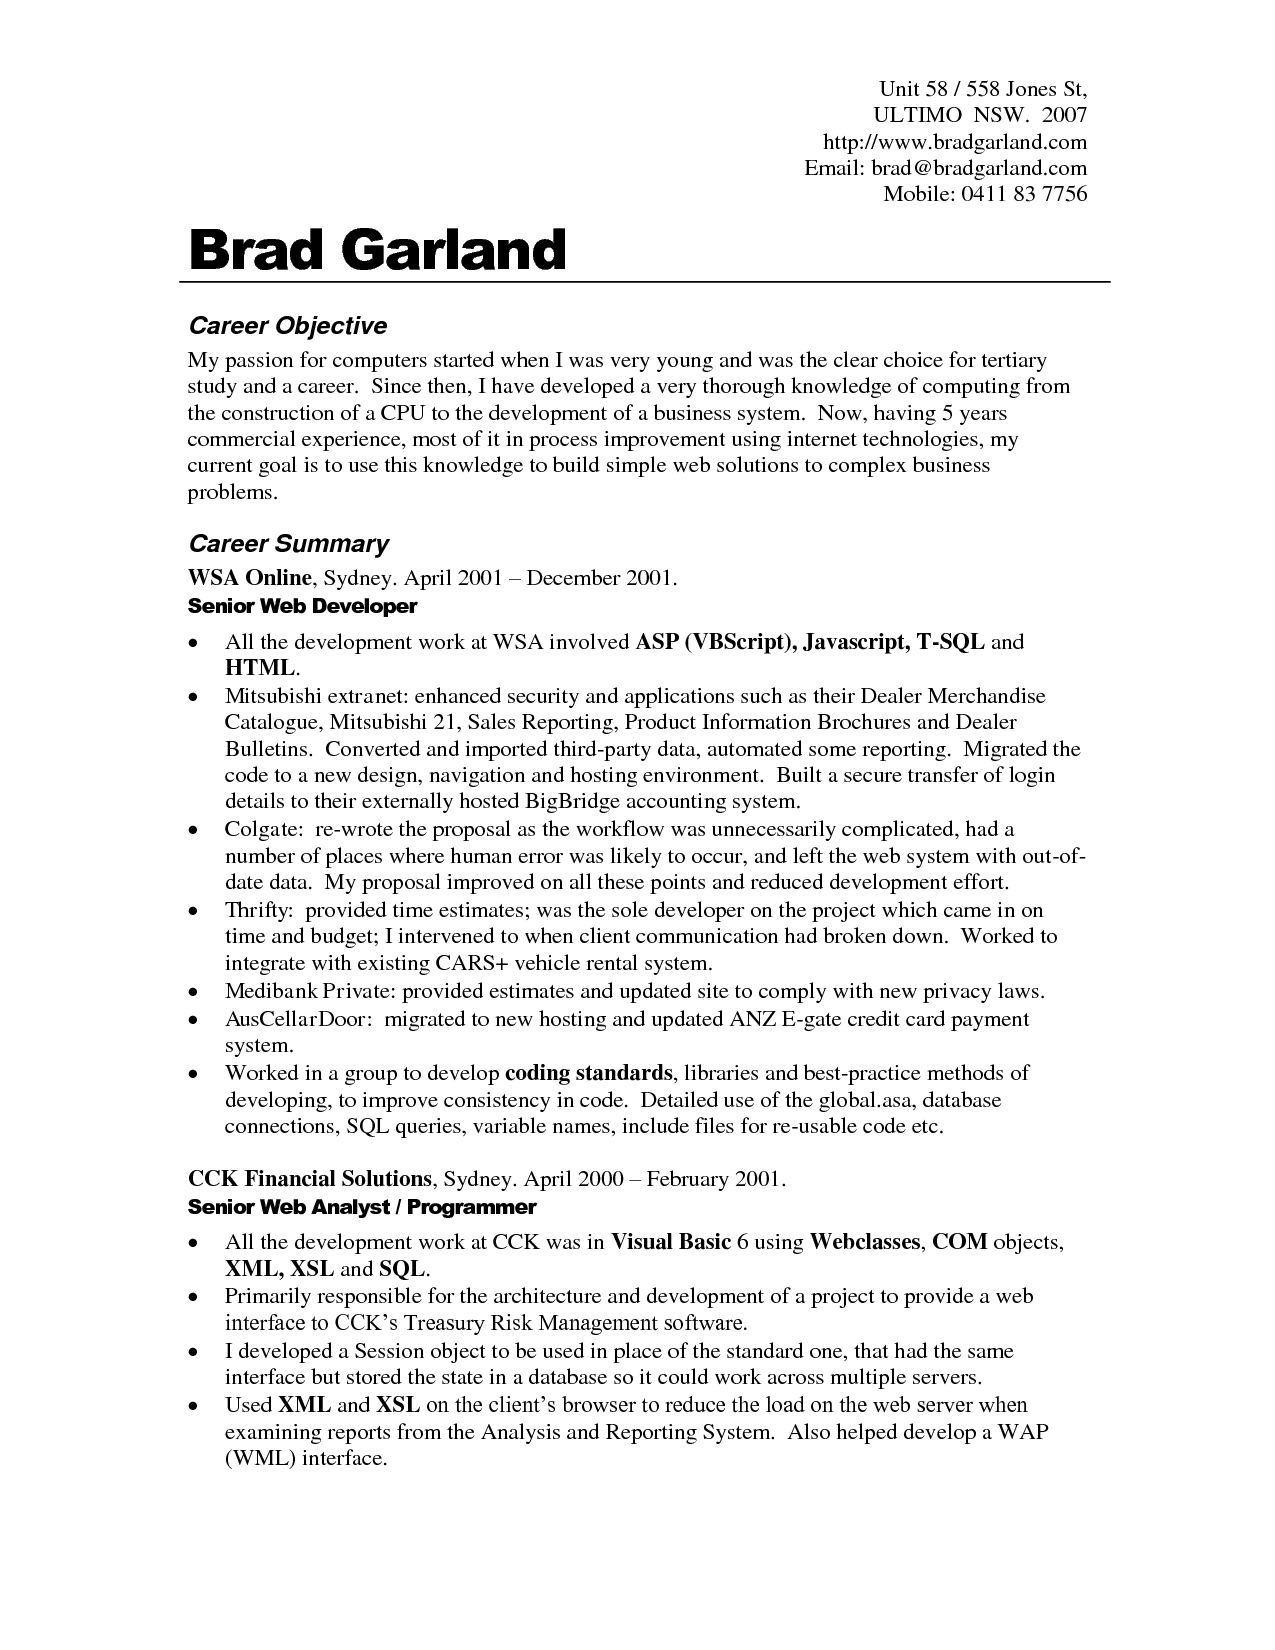 Attorney Resume Template Awesome Resume Examples Job Objective  Sample Resume Entry Level And .